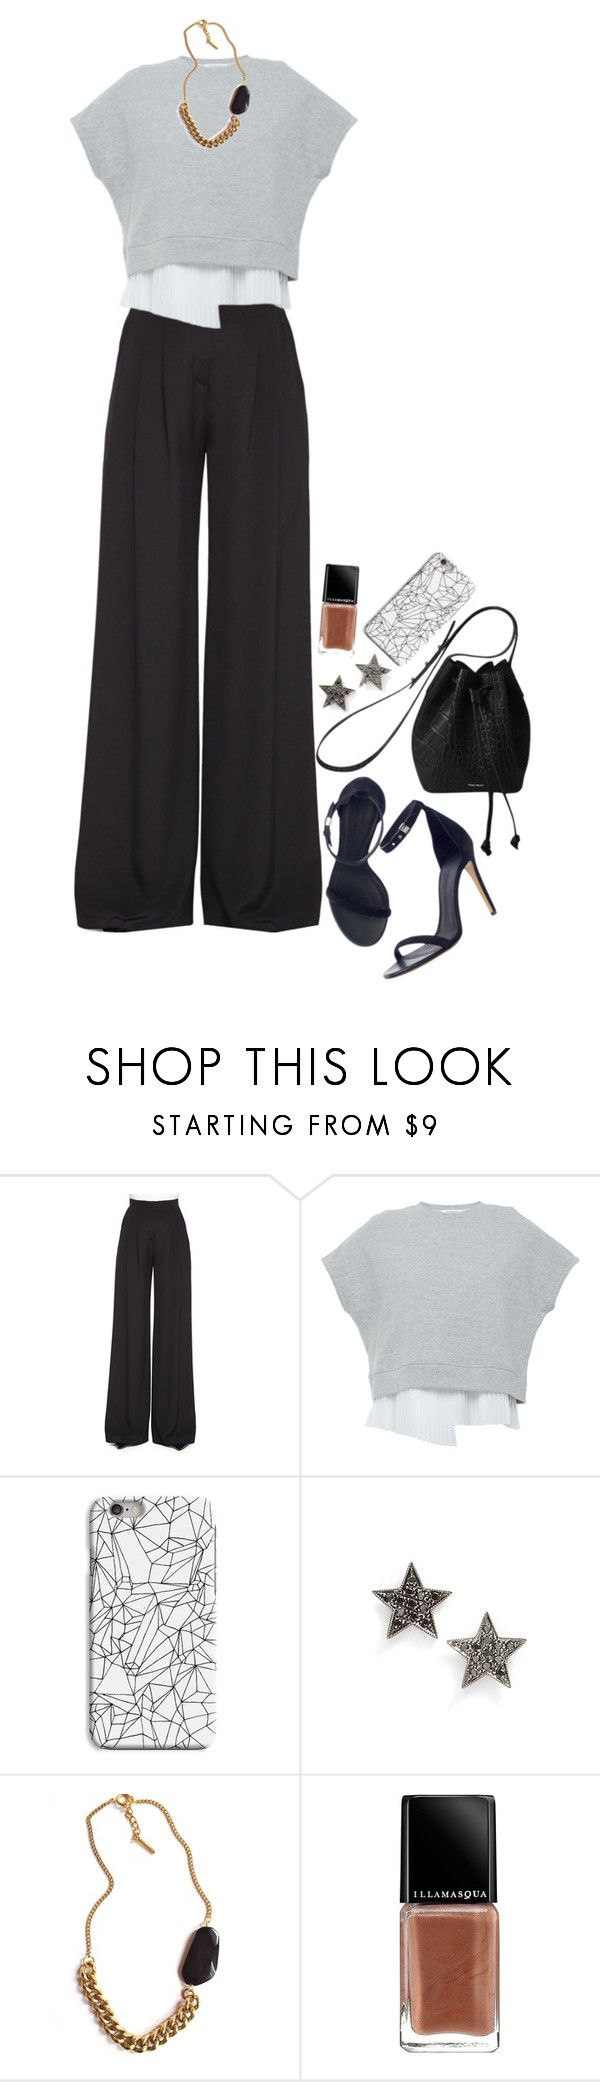 """Untitled #488"" by christinajkhjorungdal ❤ liked on Polyvore featuring Carolina Herrera, 10 Crosby Derek Lam, INDIE HAIR, Rachael Ruddick, Dana Rebecca Designs, Tilly Doro, Illamasqua, women's clothing, women and female"